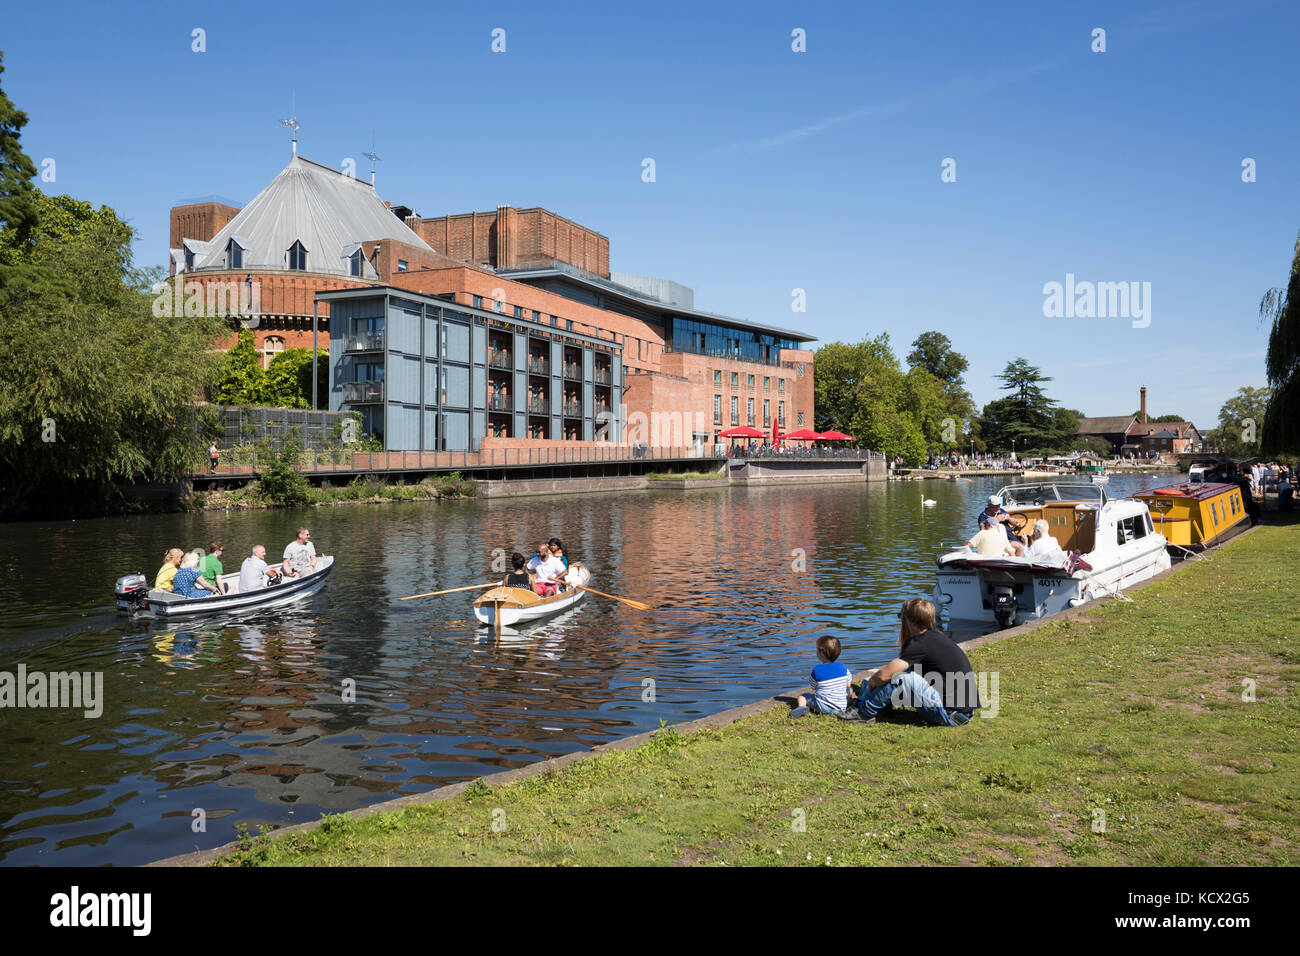 Rowing boats on the River Avon with the Royal Shakespeare Theatre, Stratford-upon-Avon, Warwickshire, England, United - Stock Image